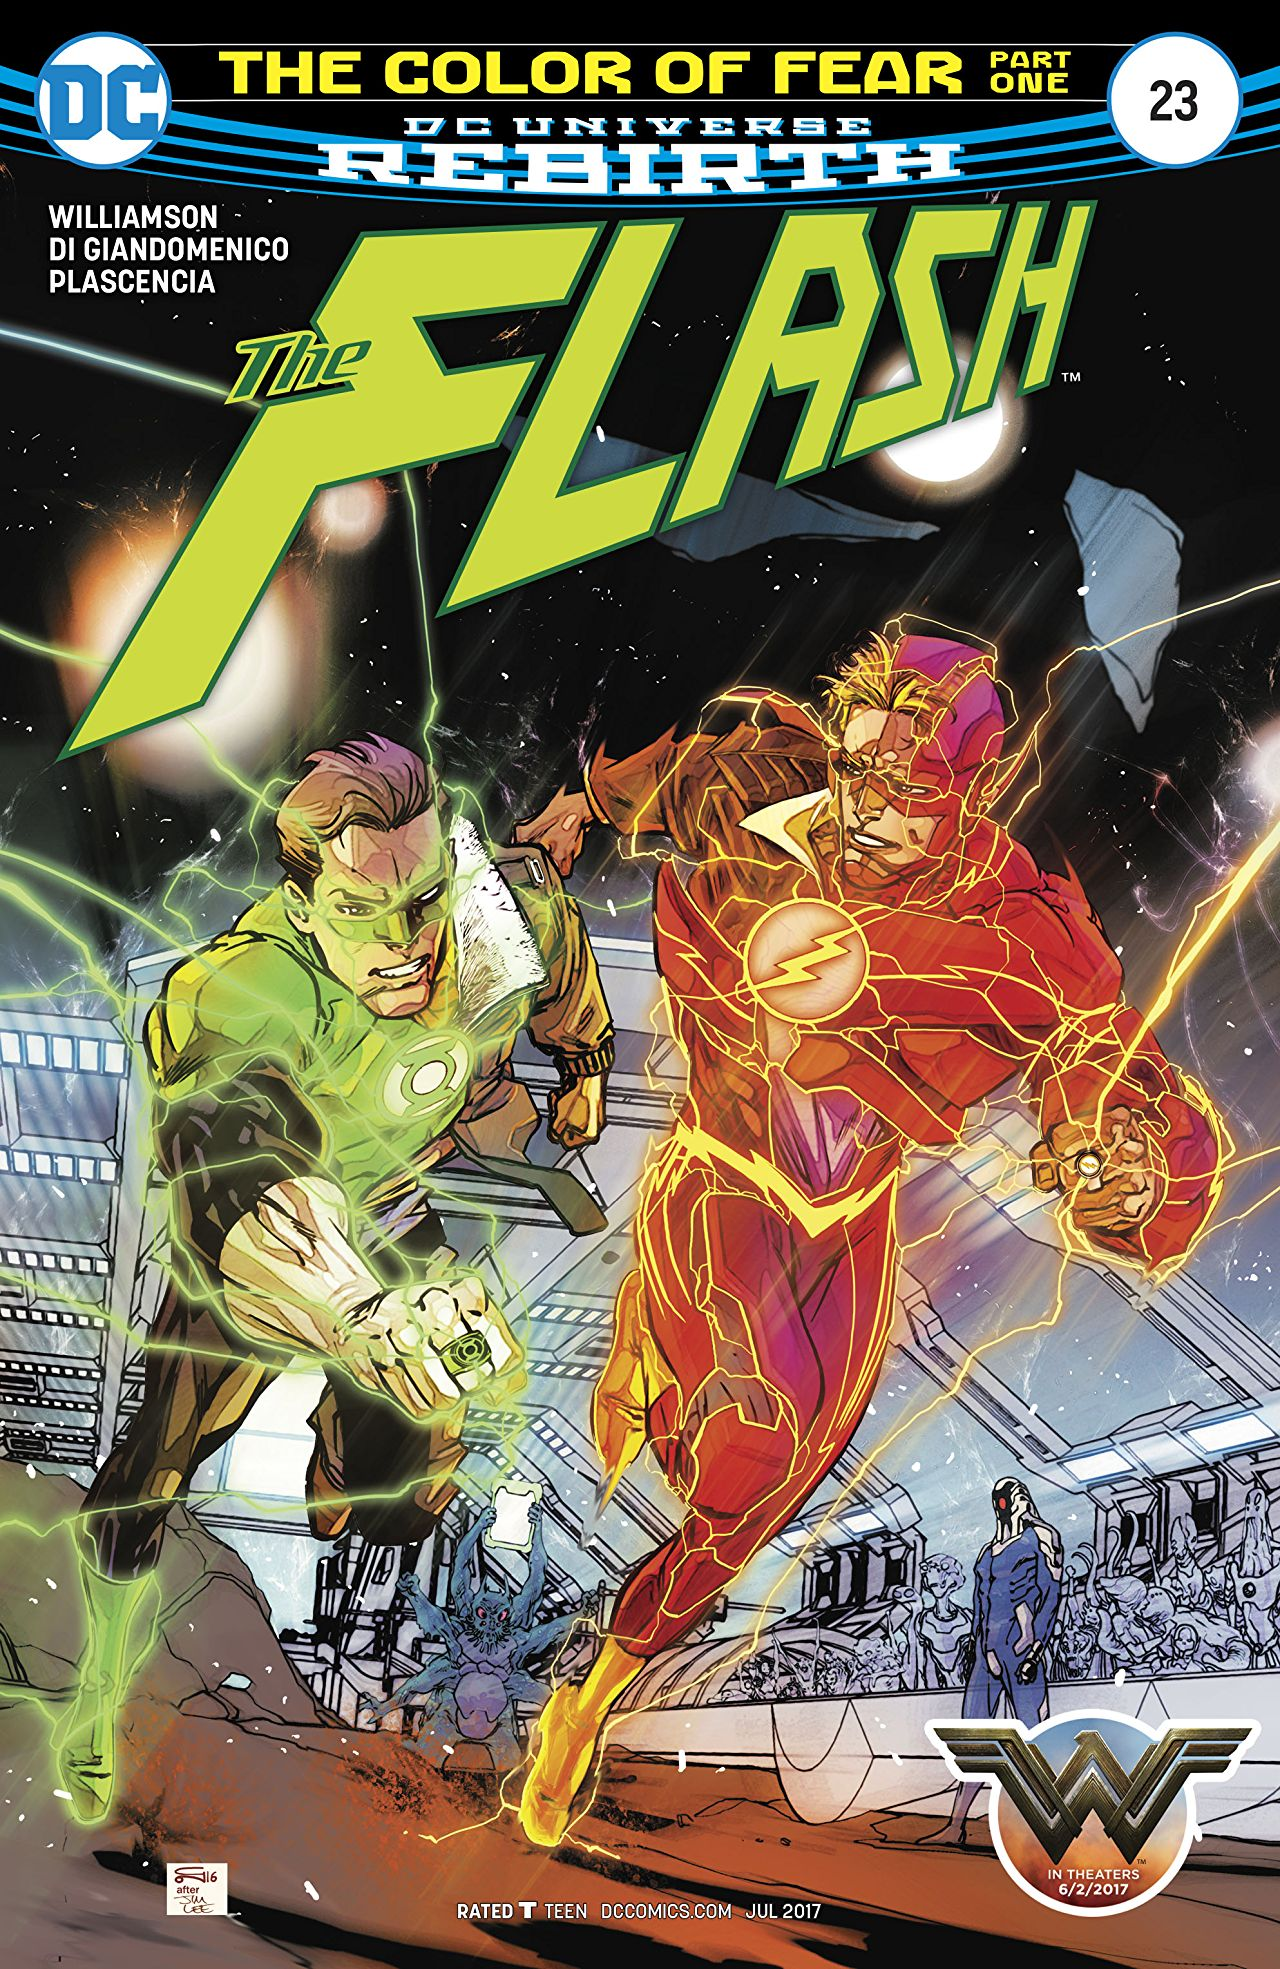 review THE FLASH #23